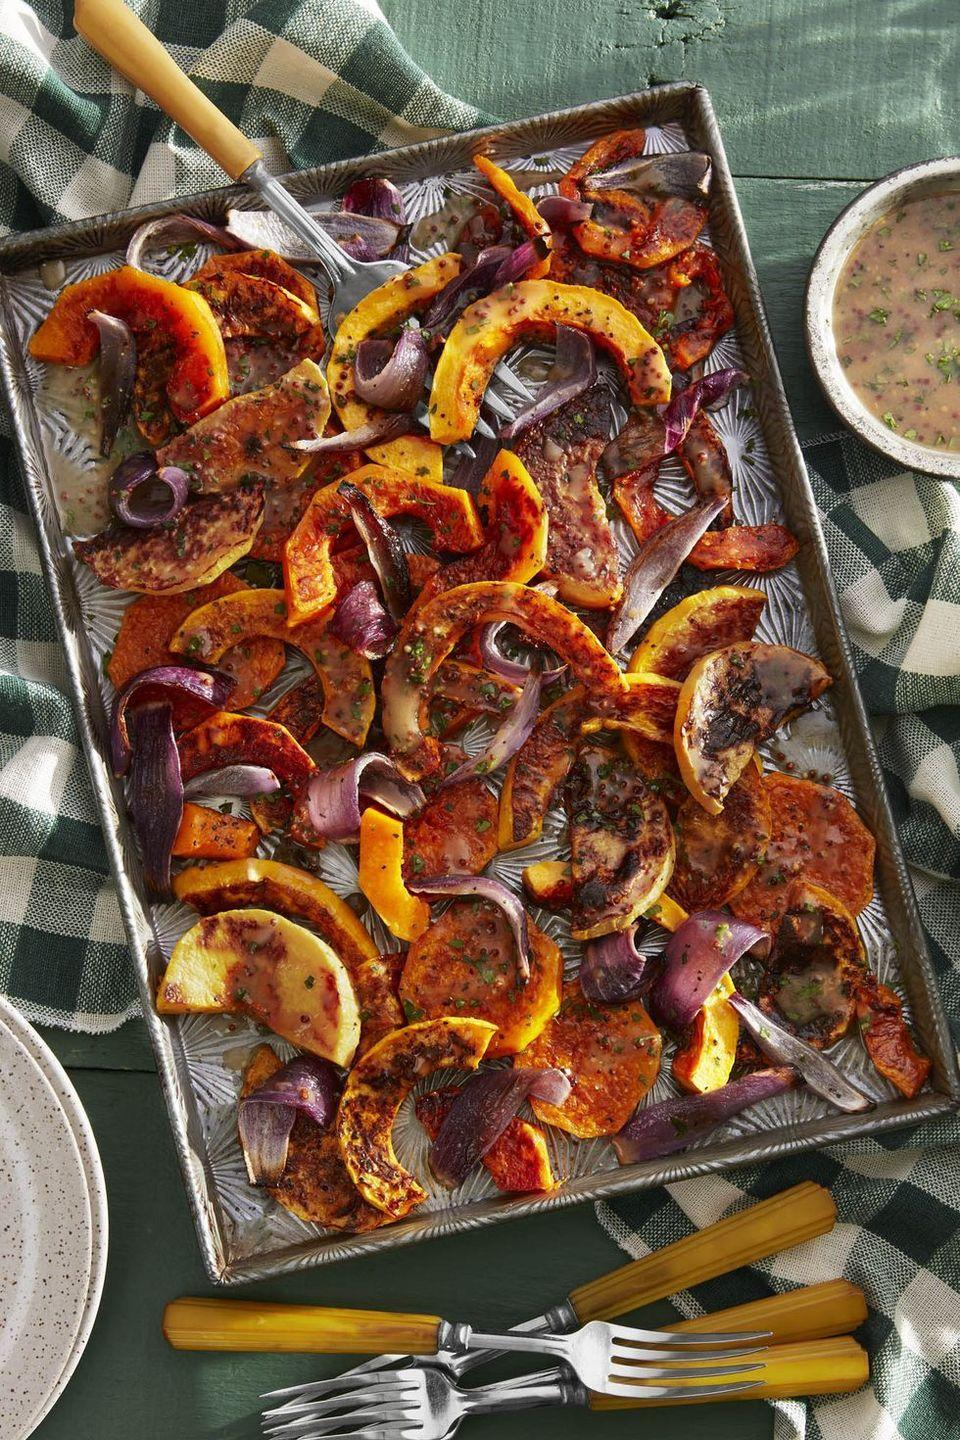 "<p>Apple cider and red onion add extra zippy flavor to this vegan recipe you can make all winter long.</p><p><strong><a href=""https://www.countryliving.com/food-drinks/a23367748/roasted-butternut-squash-with-cider-vinaigrette-recipe/"" rel=""nofollow noopener"" target=""_blank"" data-ylk=""slk:Get the recipe"" class=""link rapid-noclick-resp"">Get the recipe</a>.</strong></p><p><strong><strong><a class=""link rapid-noclick-resp"" href=""https://www.amazon.com/Wilton-Perfect-Results-Non-Stick-21-Inch/dp/B00KIF5LLK?tag=syn-yahoo-20&ascsubtag=%5Bartid%7C10050.g.34473510%5Bsrc%7Cyahoo-us"" rel=""nofollow noopener"" target=""_blank"" data-ylk=""slk:SHOP BAKING SHEETS"">SHOP BAKING SHEETS</a></strong><br></strong></p>"